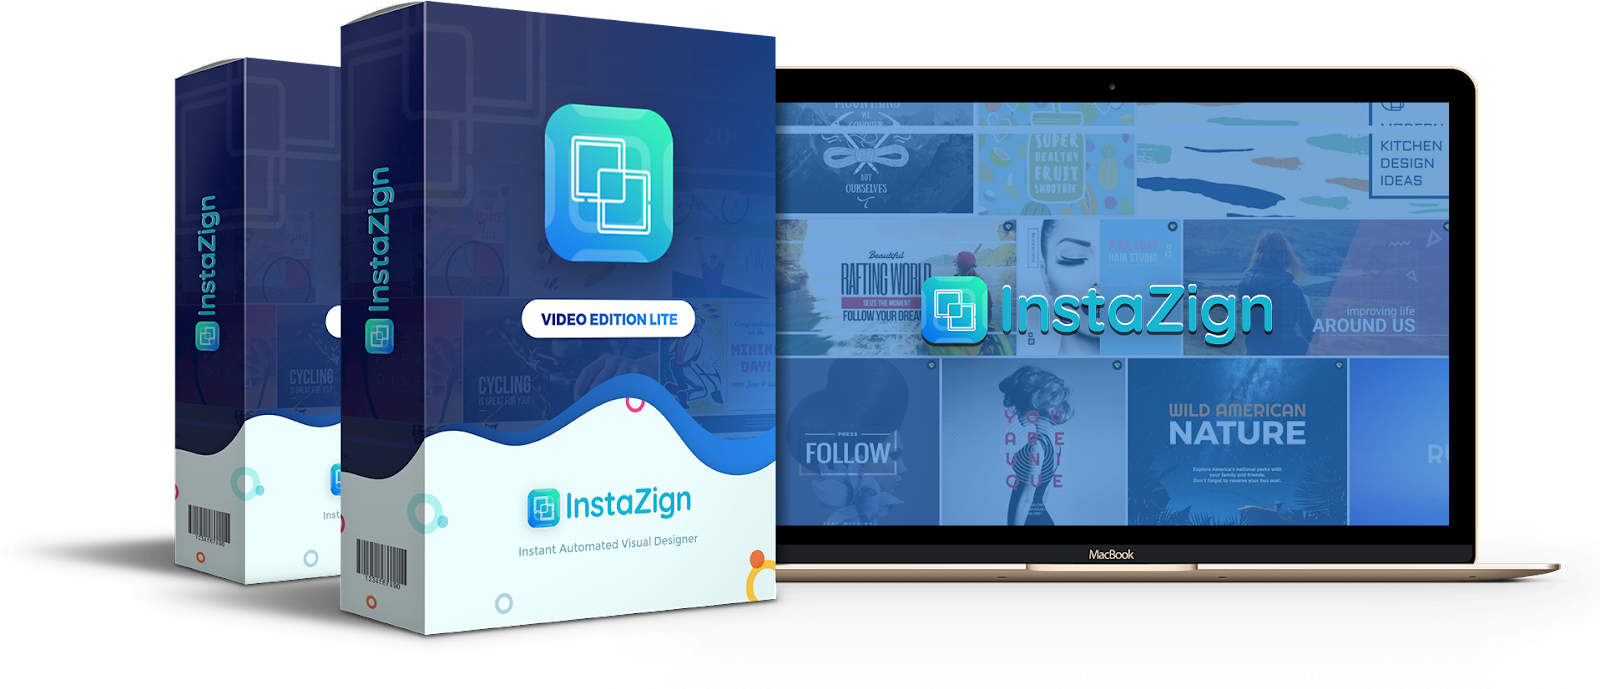 Instazign Review: *Read Here Before Buying this Product* 9